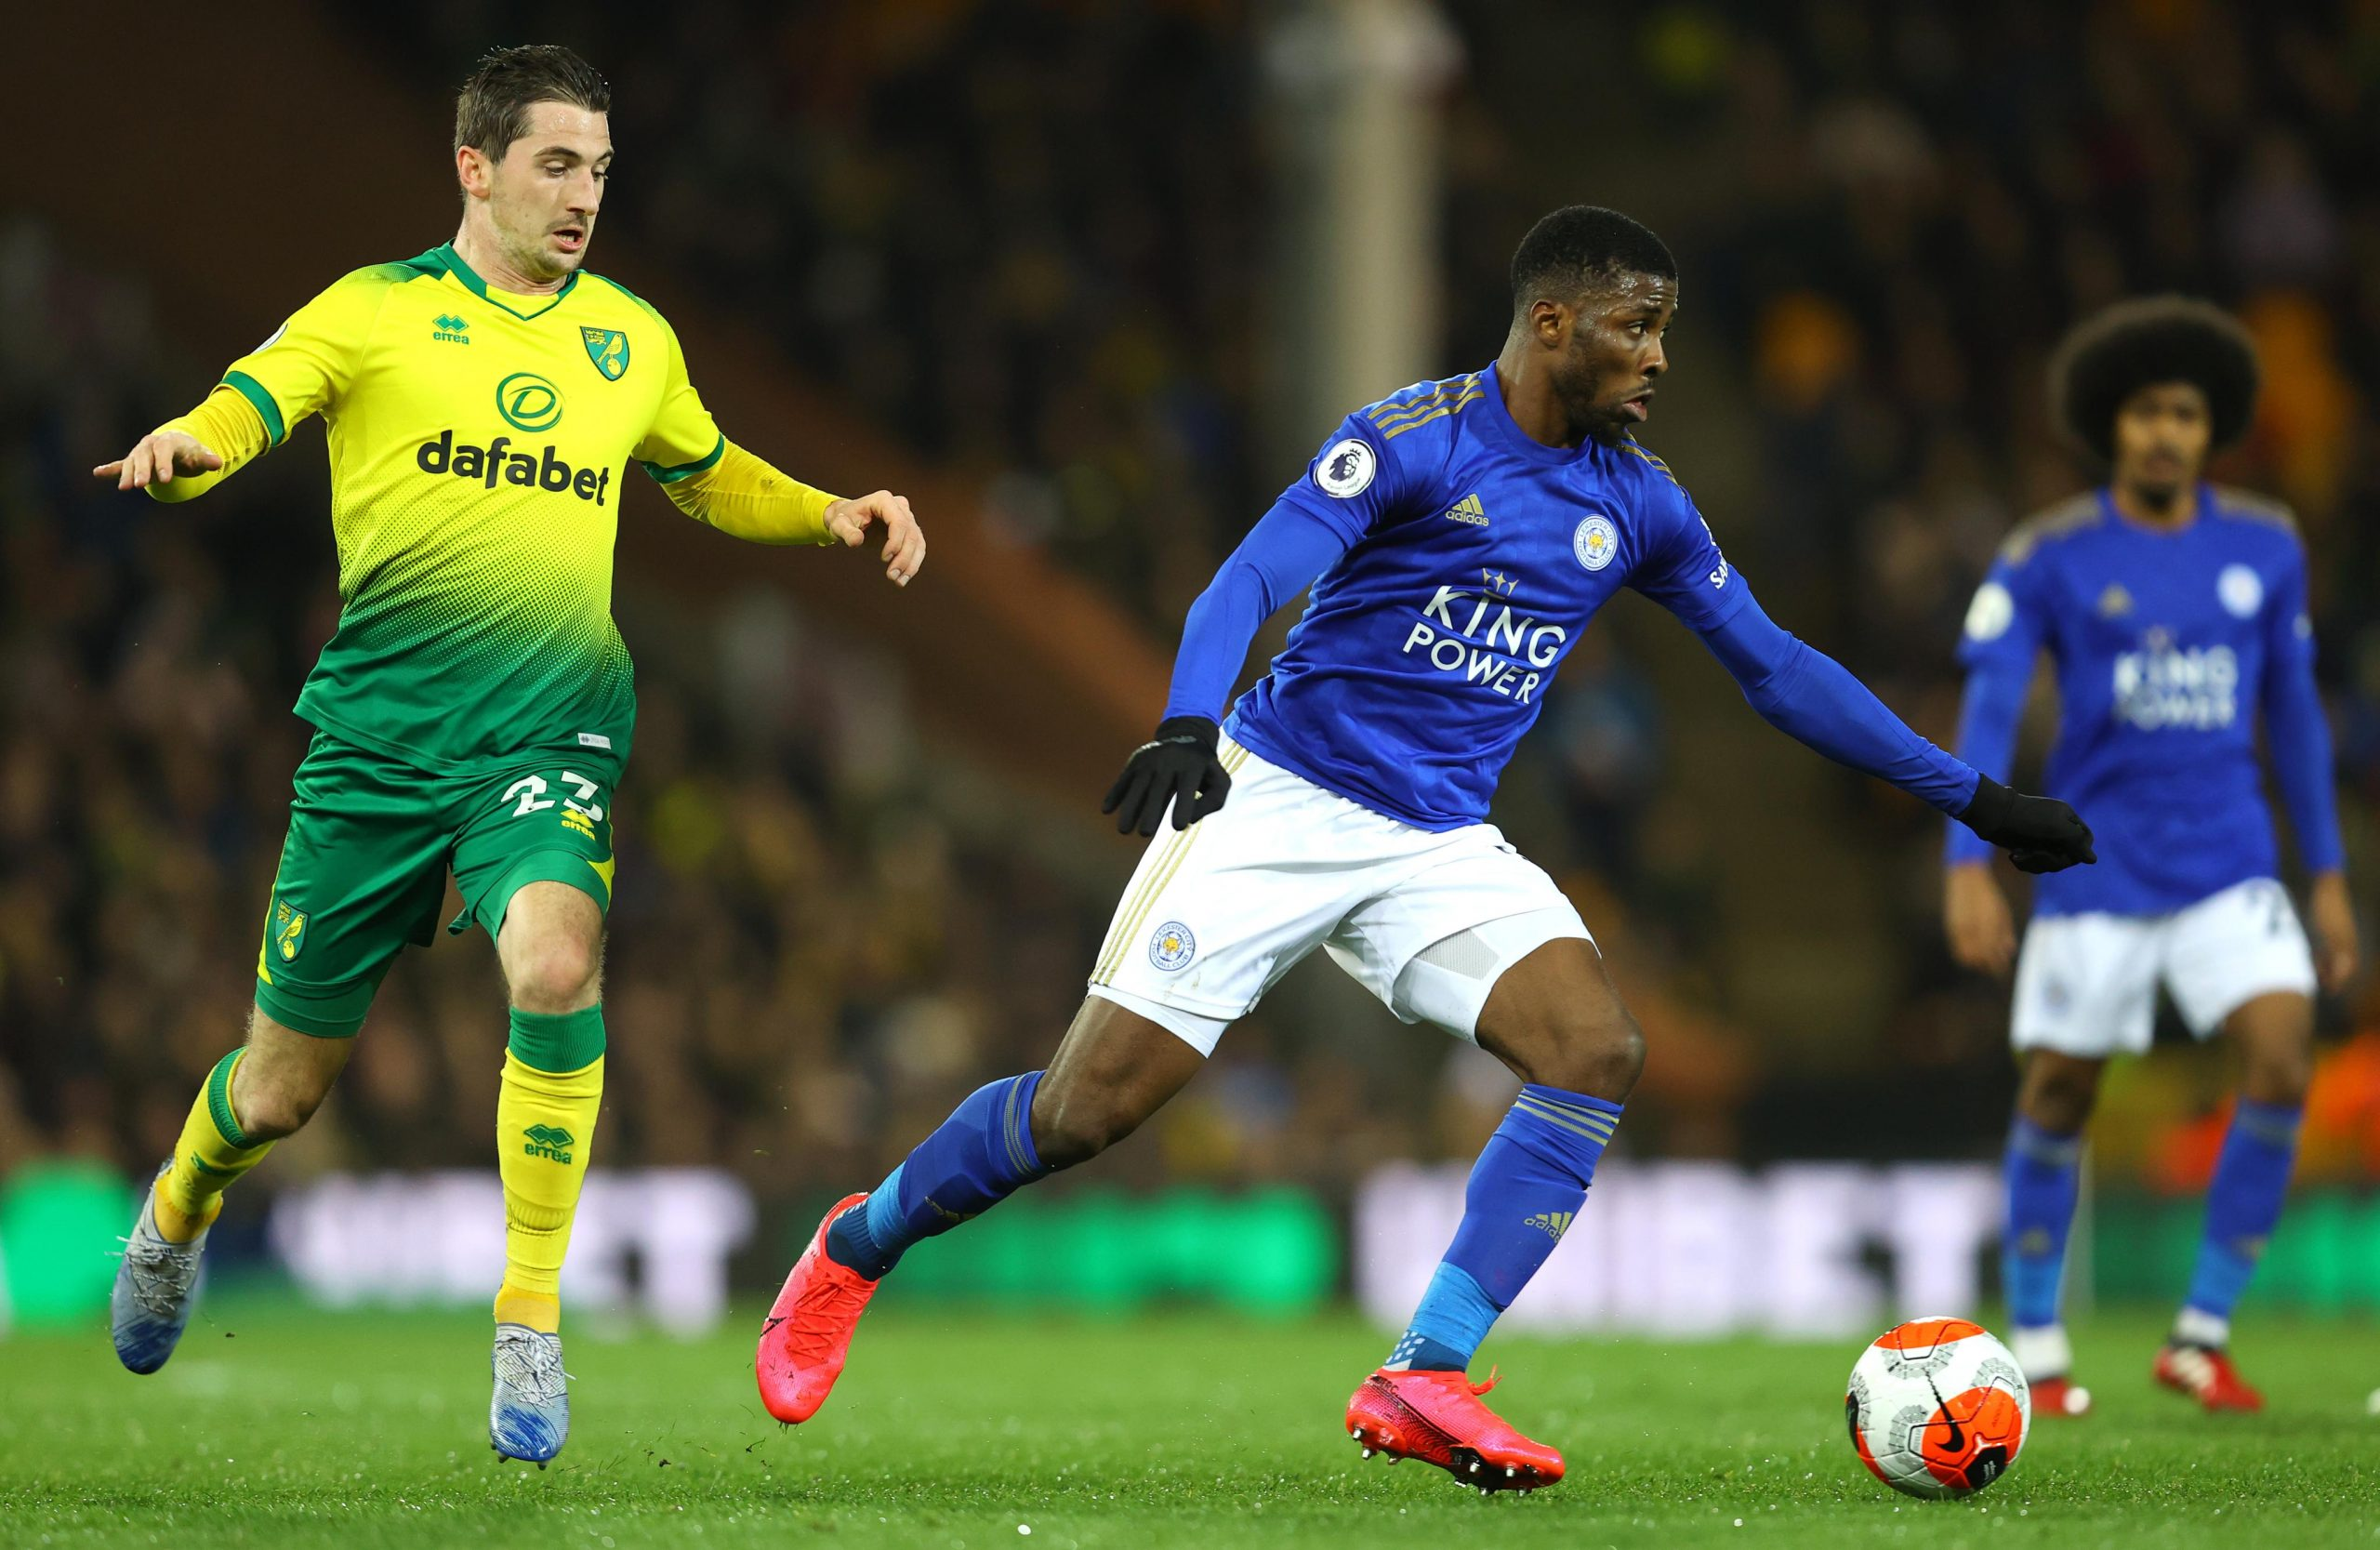 Iheanacho: Leicester Still Has A Lot To Play For Despite Poor Run